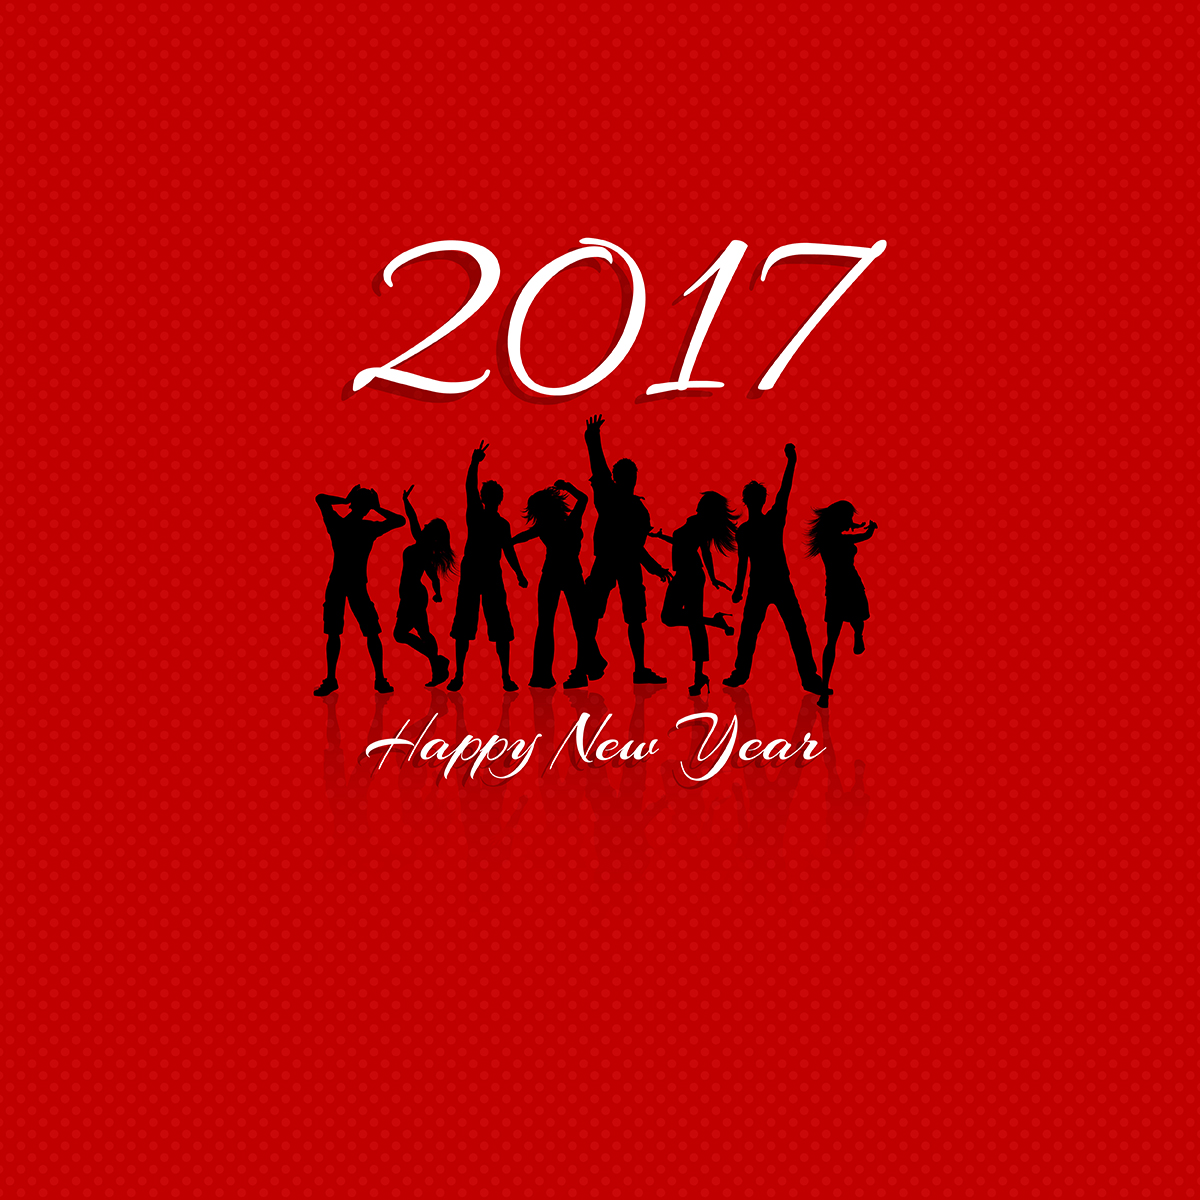 Wishing You a Happy New Year 2017 Messages